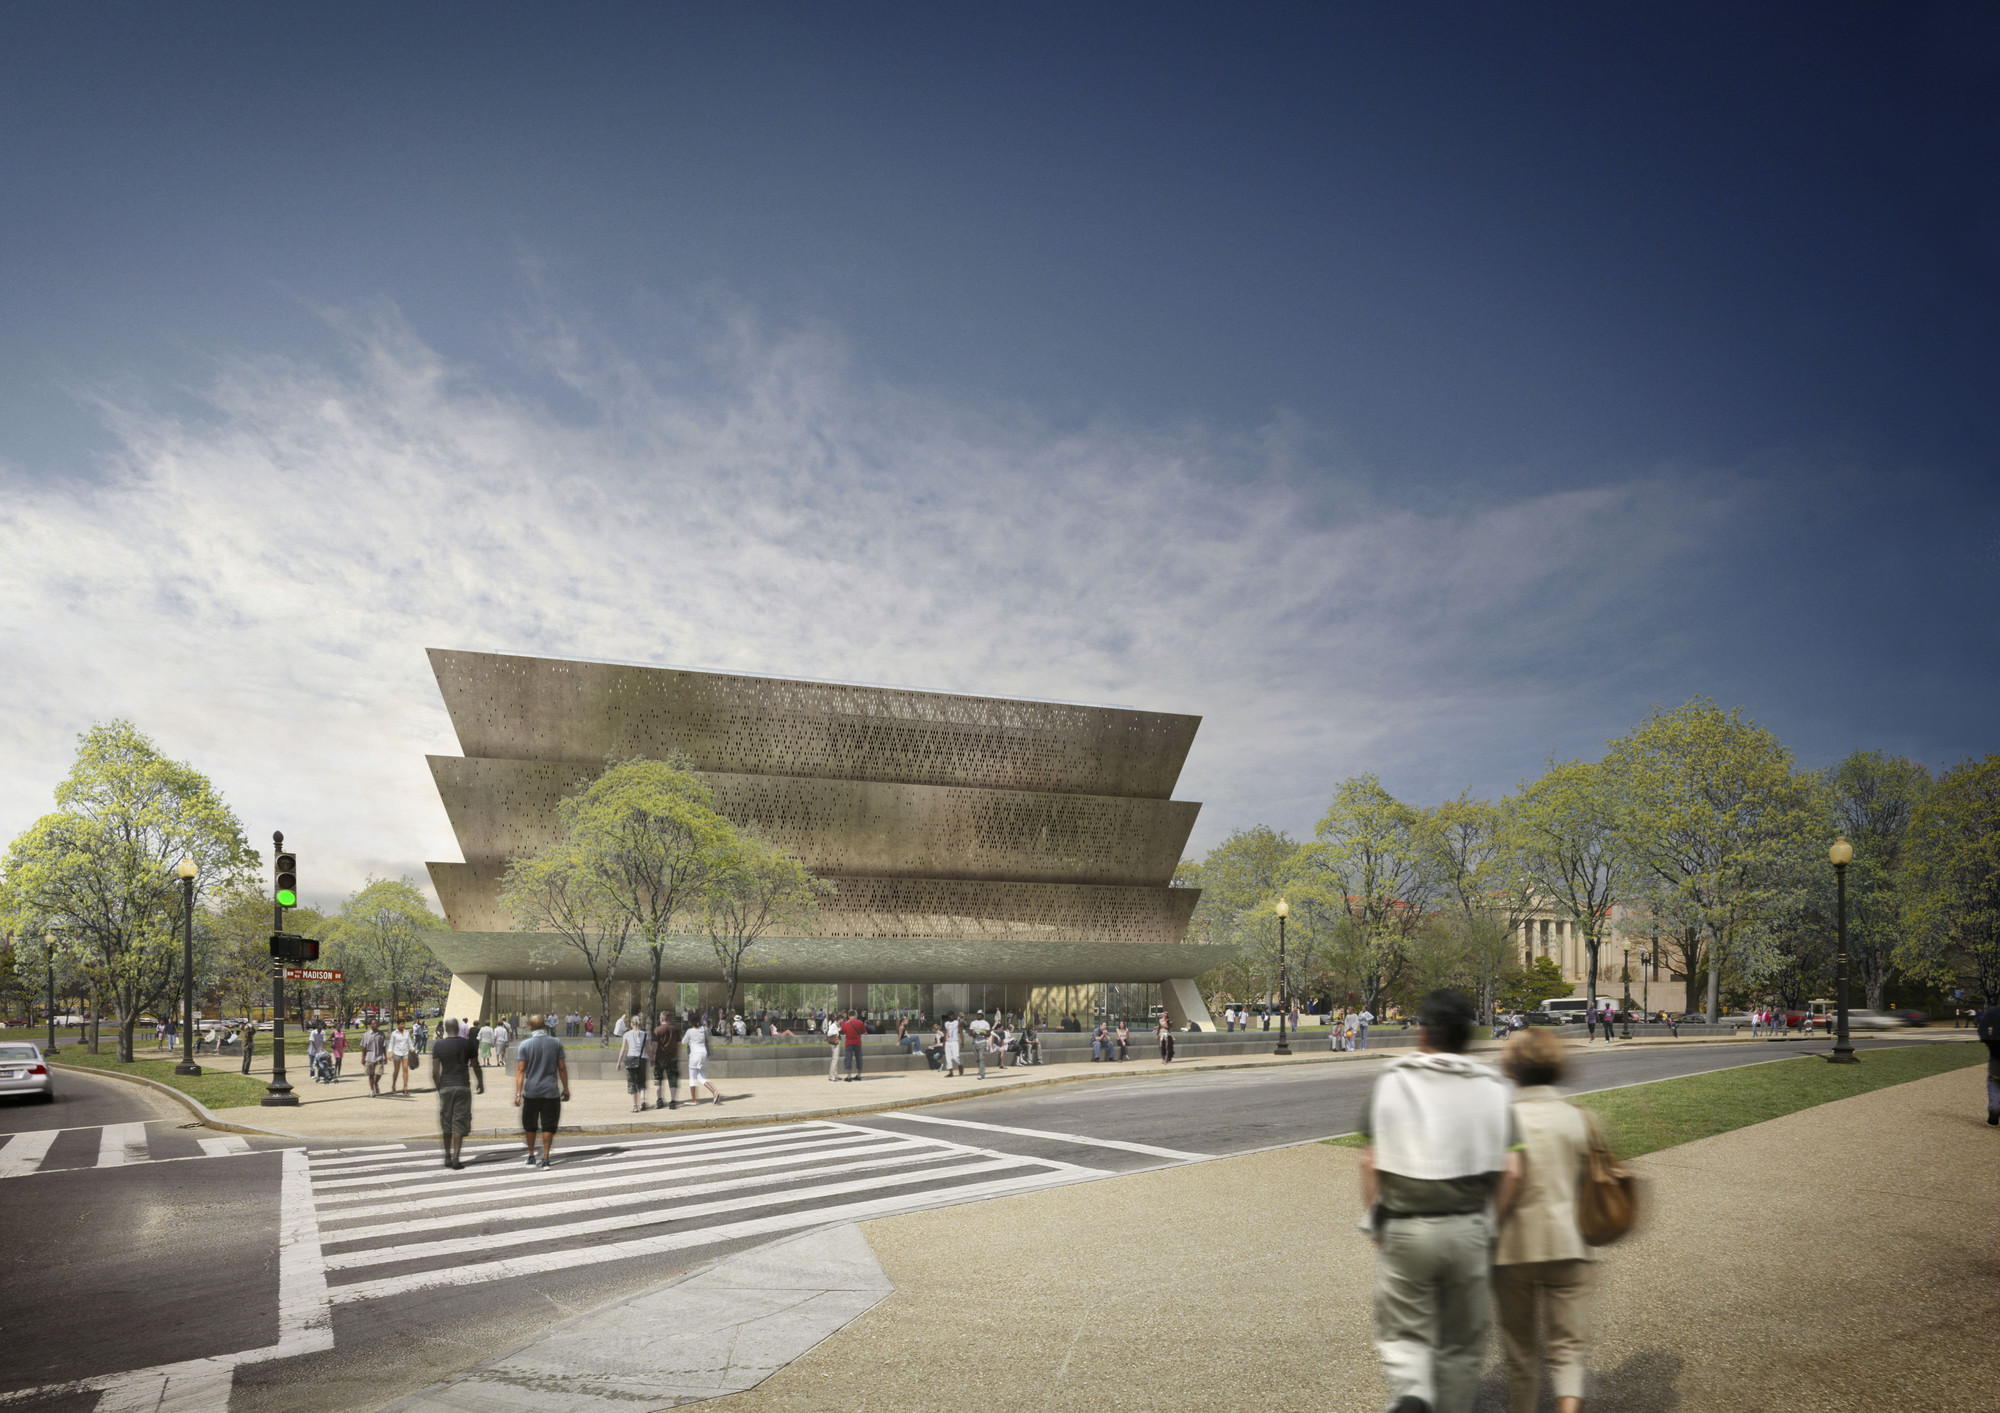 The Smithsonian National Museum of African American History and Culture in Washington DC, USA. Image Courtesy of Adjaye Associates